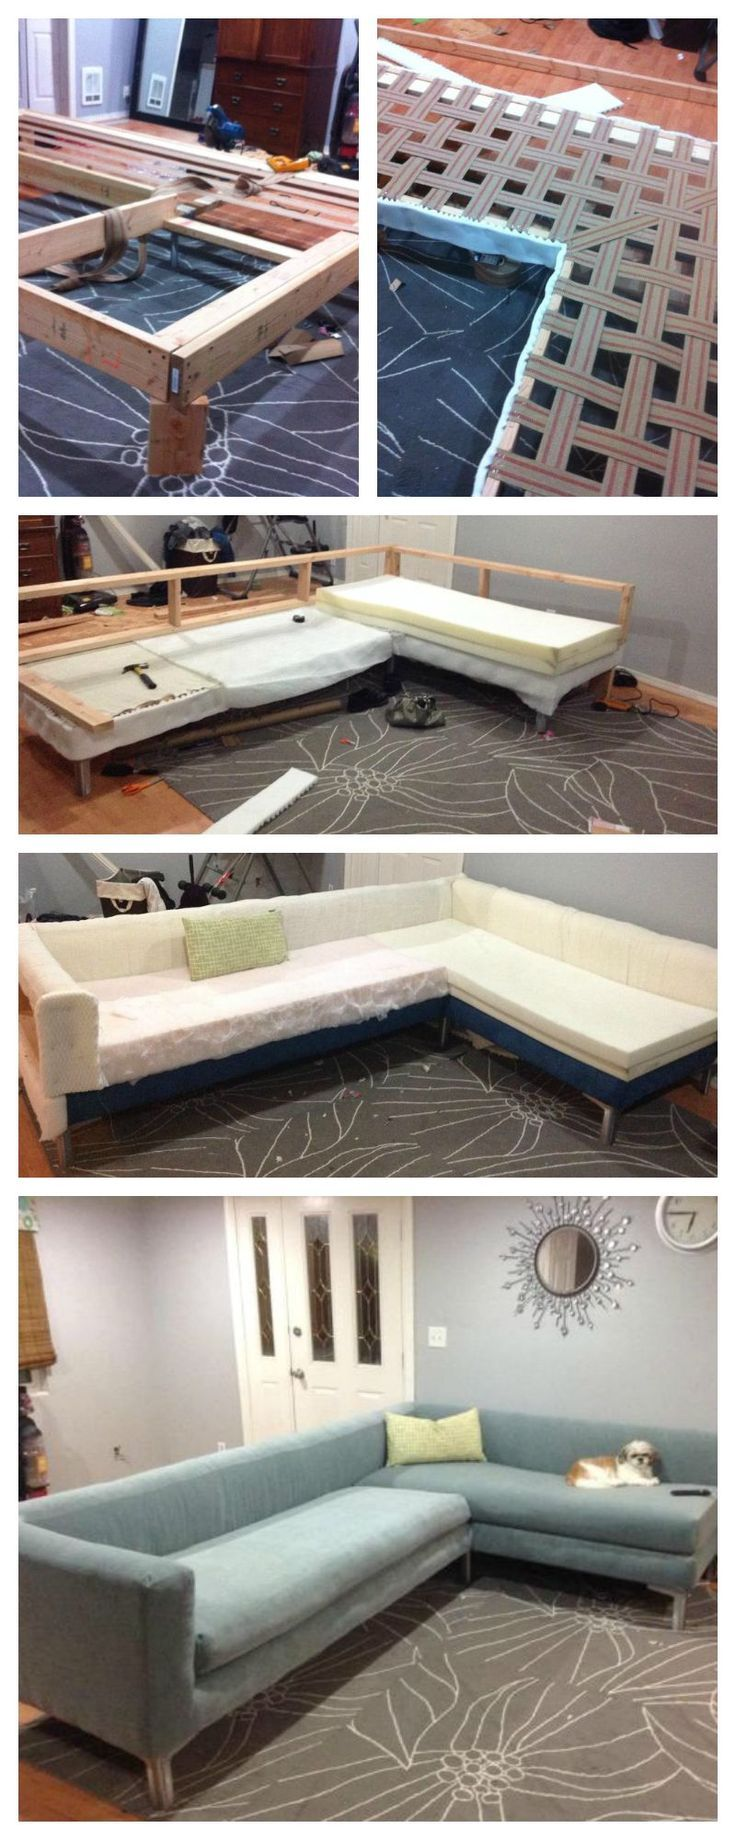 Build your own sofa or couch! Easy DIY 2x4 frame! Modern style blue pretty sectional how to tutorial upholster frame cushion ANA-WHITE.com home improvement ideas #home #diy